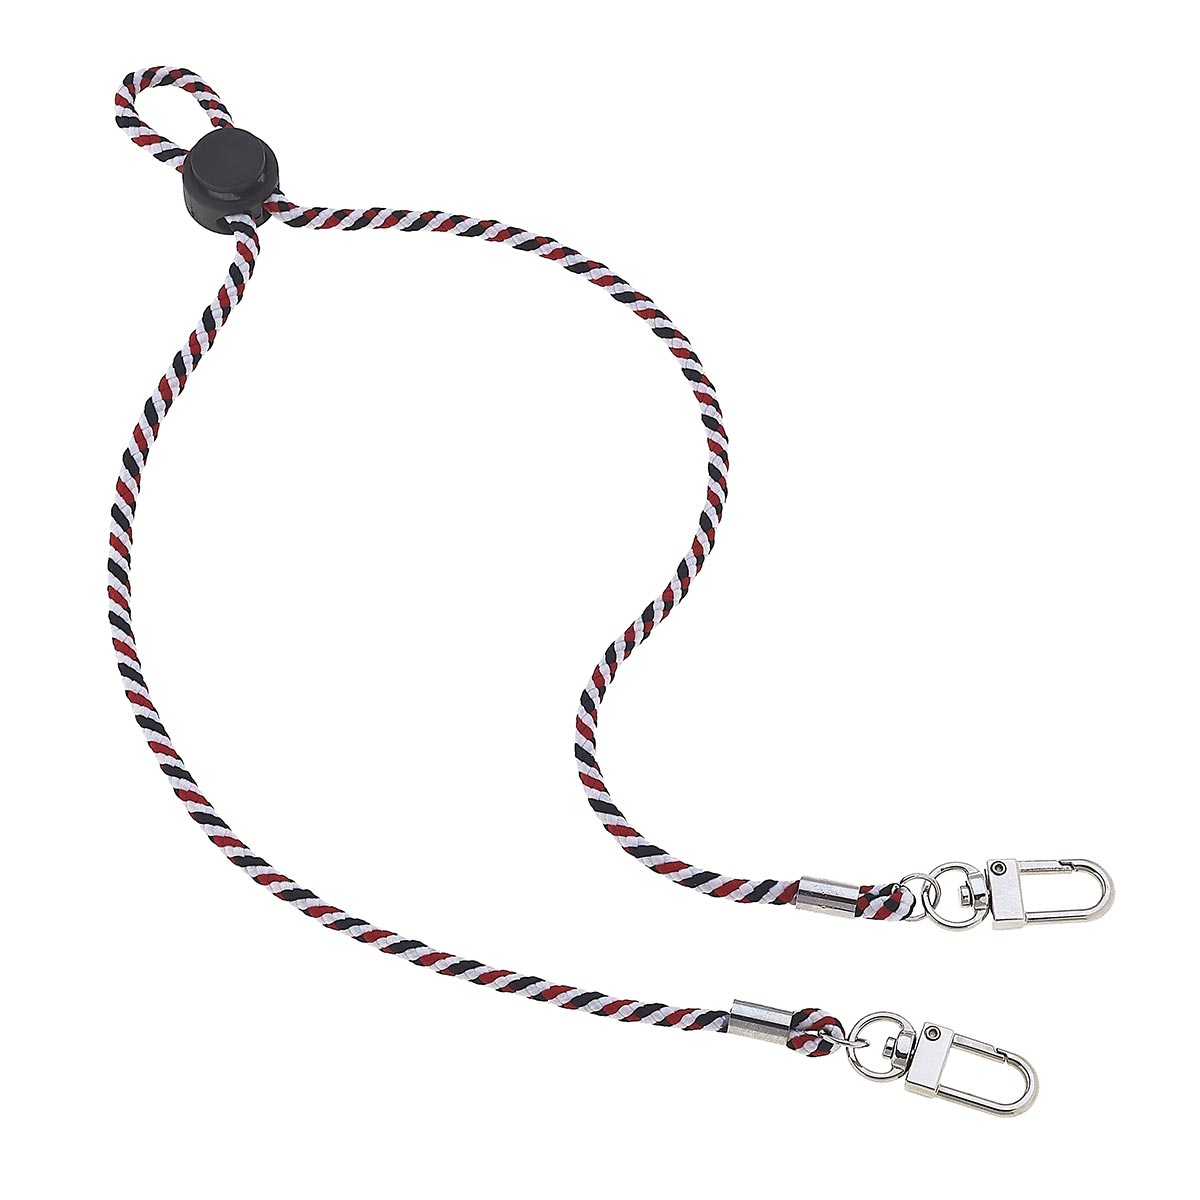 Ethan Men's Cord Mask Lanyard in Red and Black